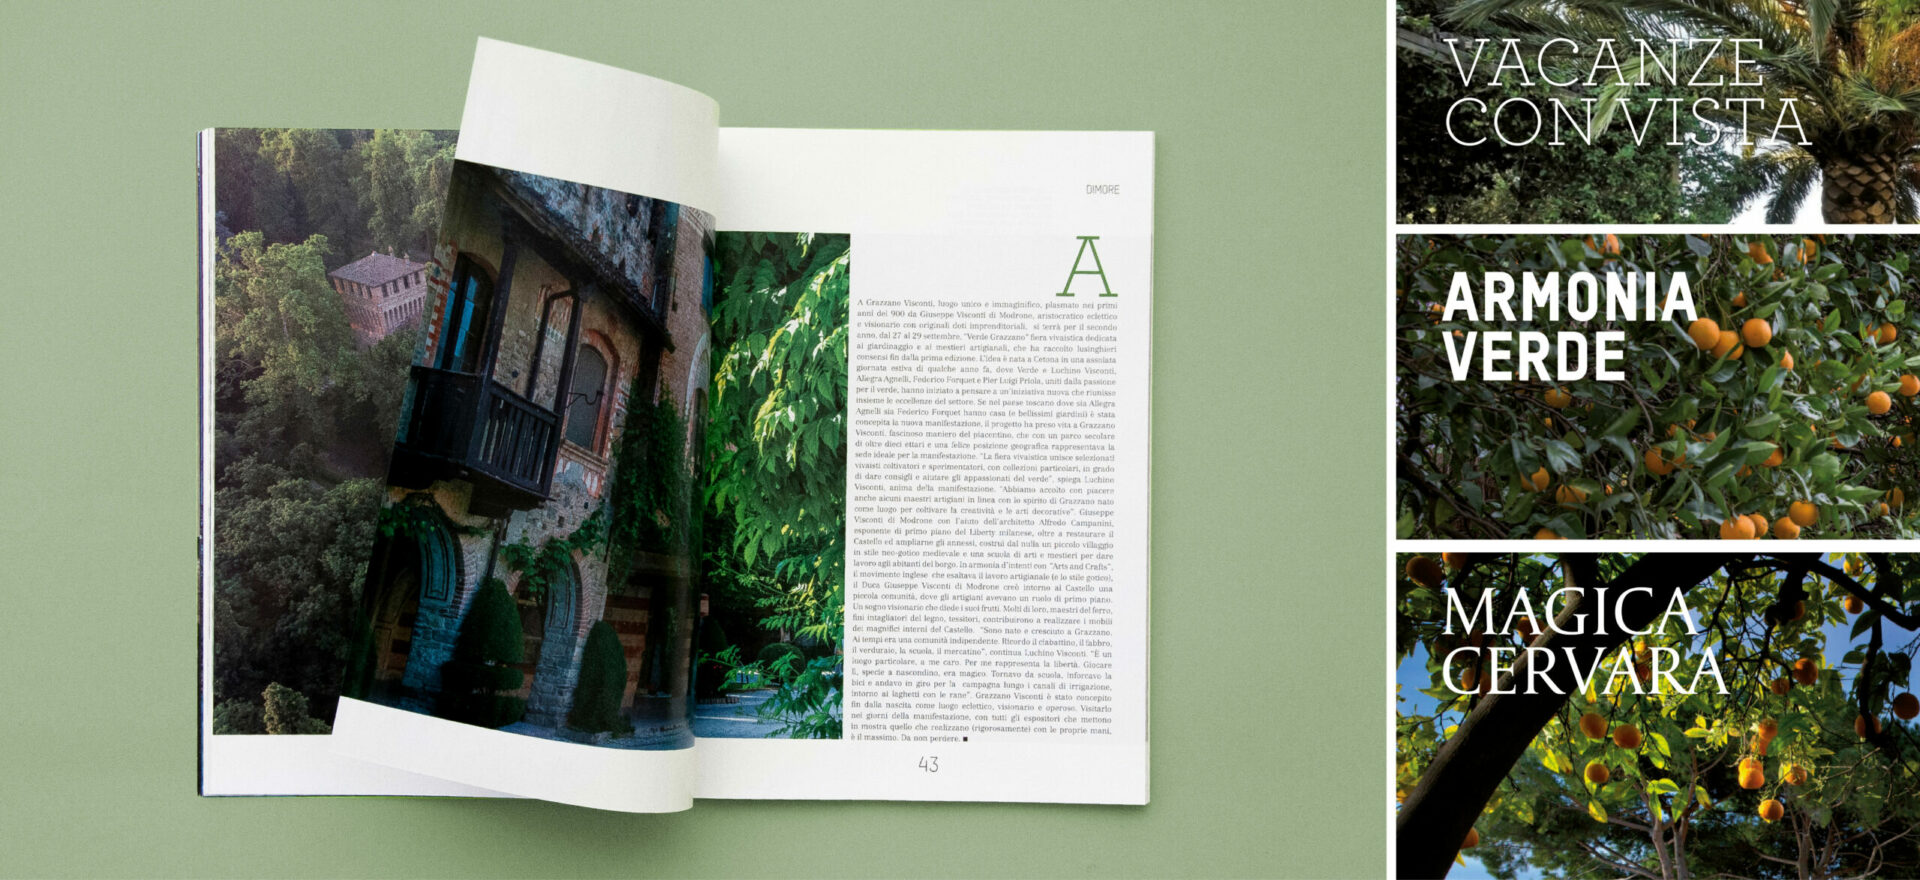 Opened Ville Giardini magazine showing detail of the typography and composition of text and images used in the project of the Art Direction and graphic Design for Visibilia Editore in a light green background. On the right side of the image there is three different compositions of titles for the magazine sections, with plants in background in a blue sky.